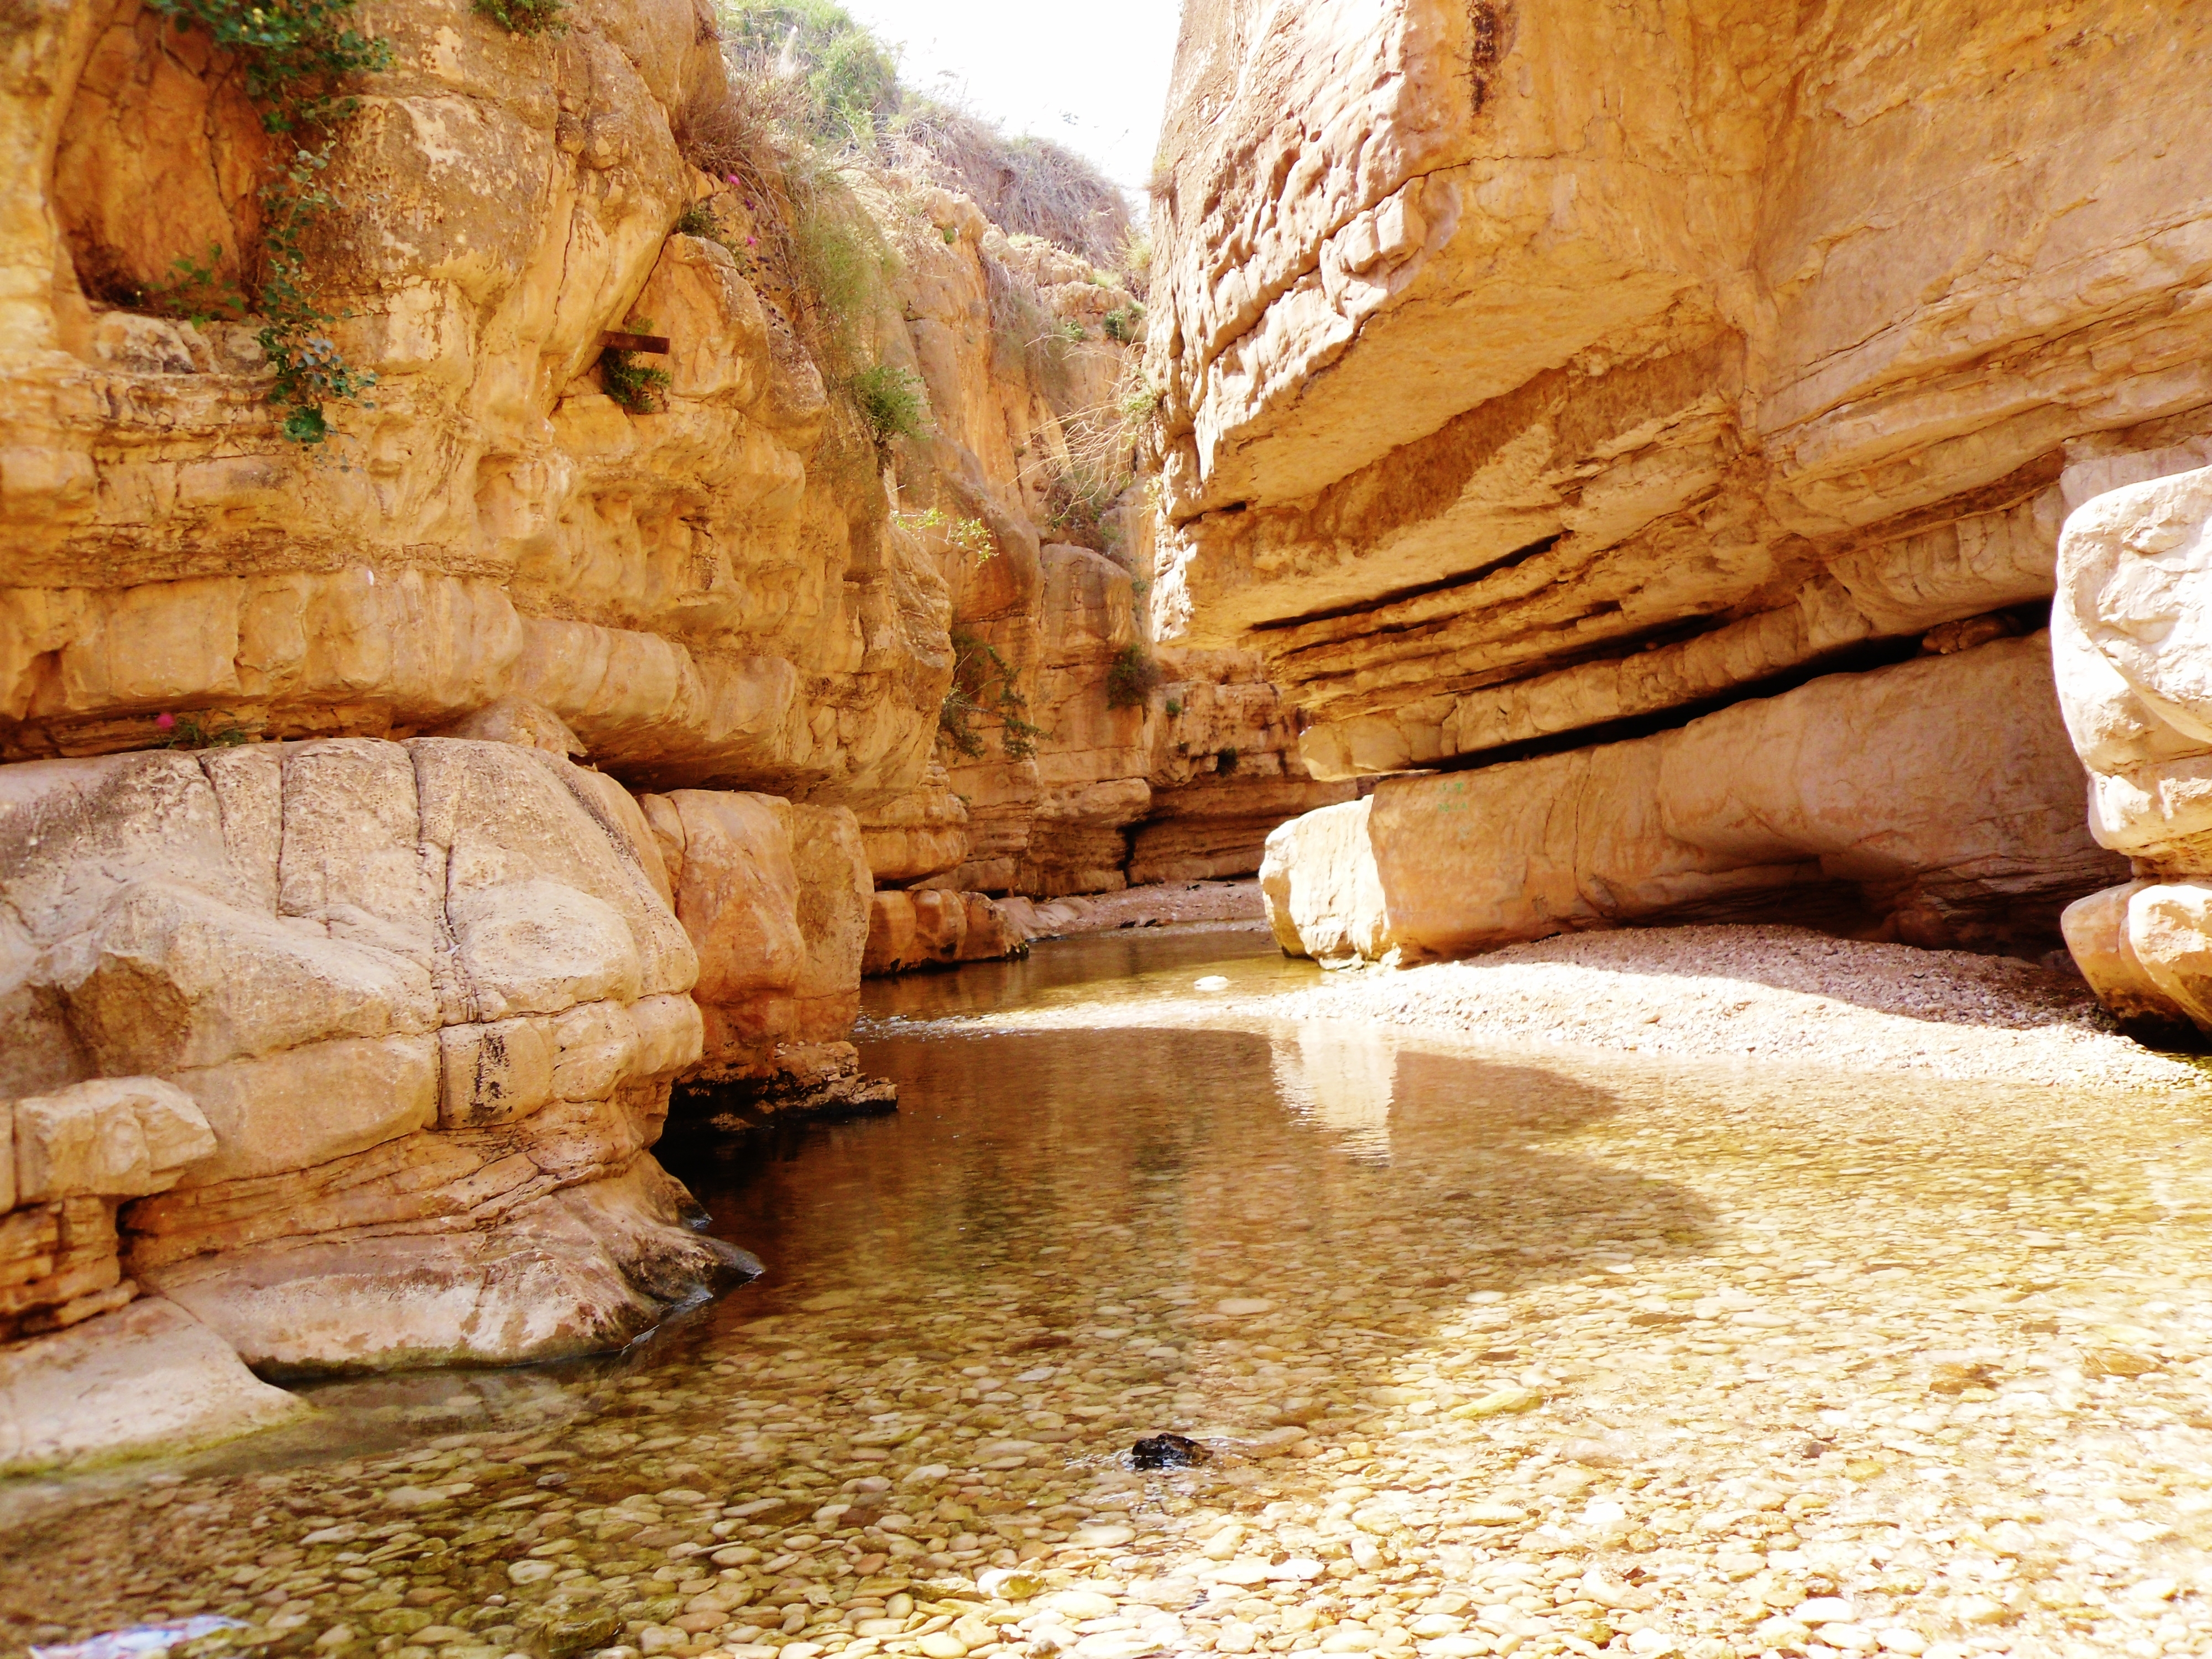 Popular Gorge images for mobile phone